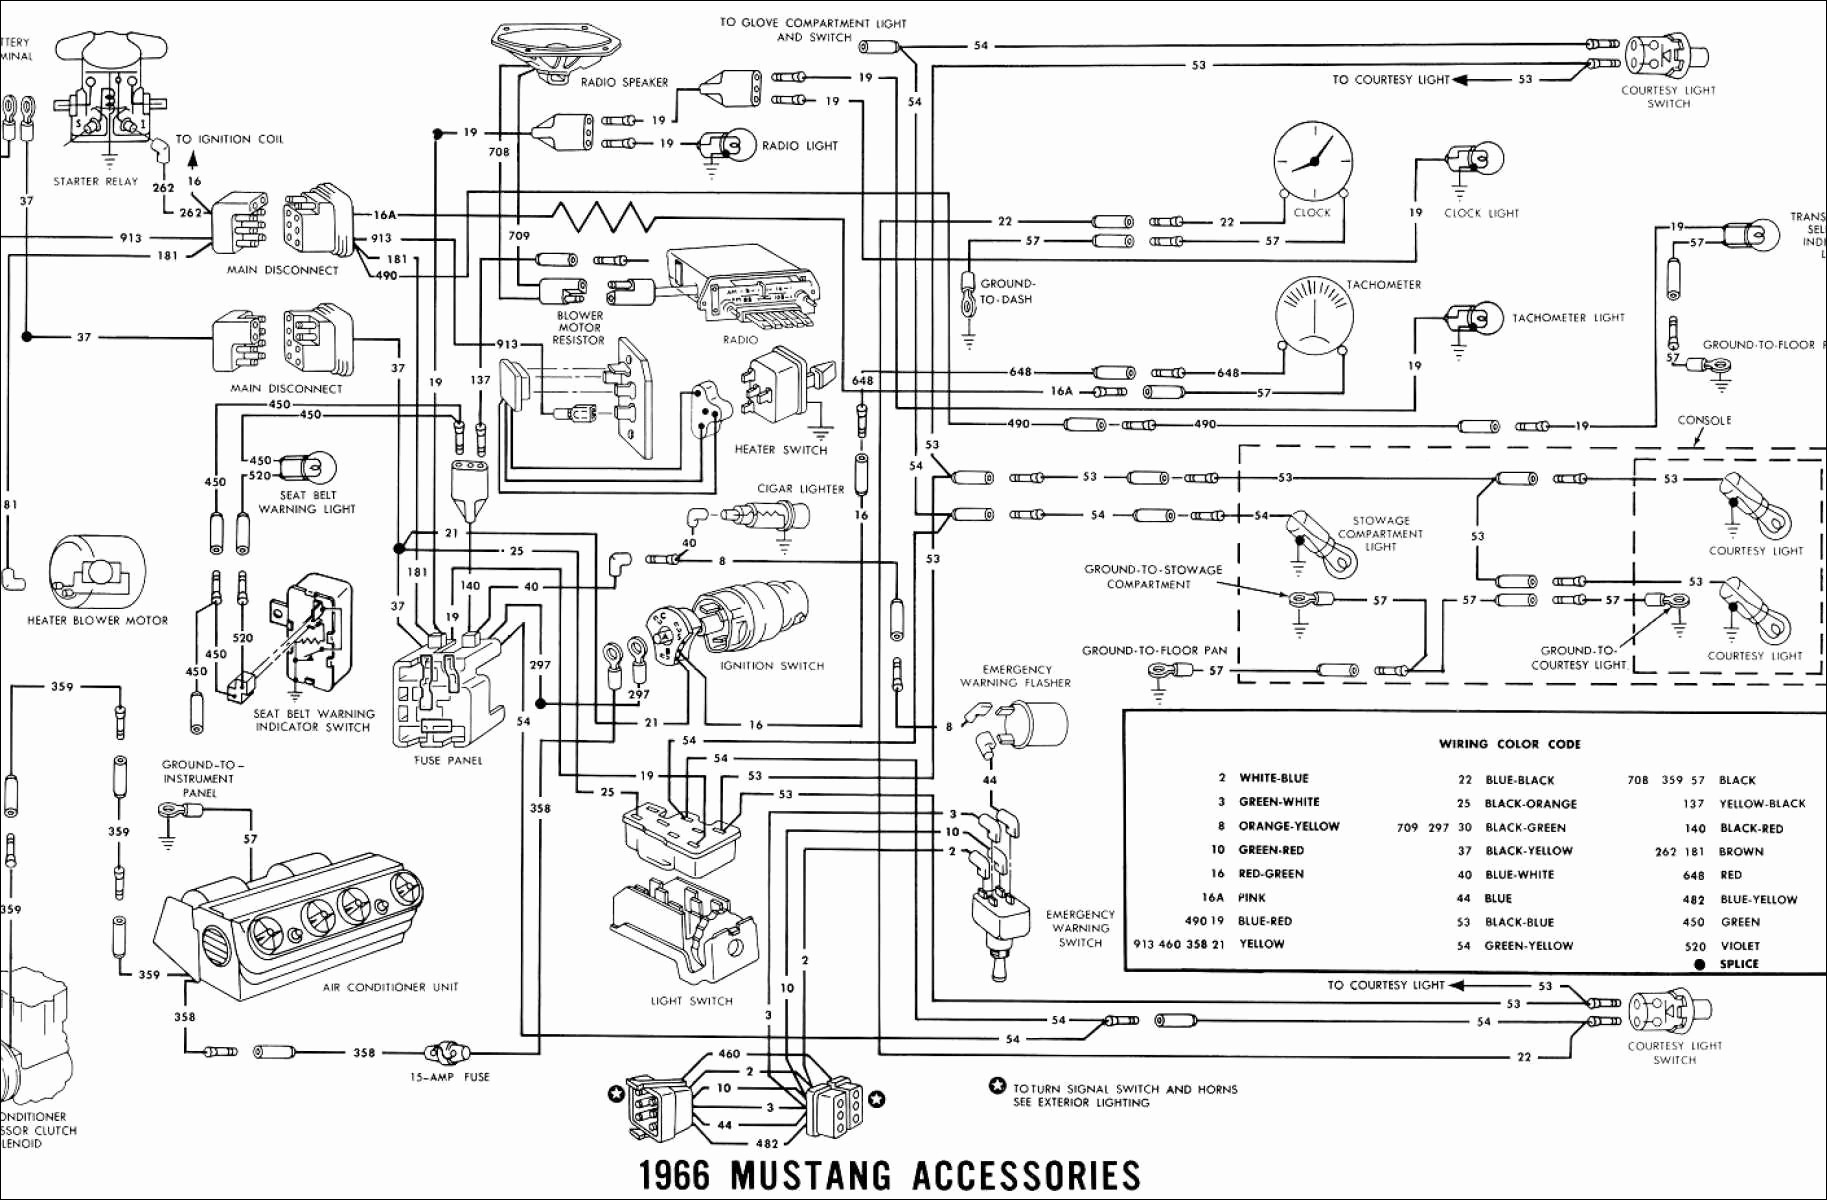 Meyer Snow Plow Wiring Diagram Wiring Diagram Western